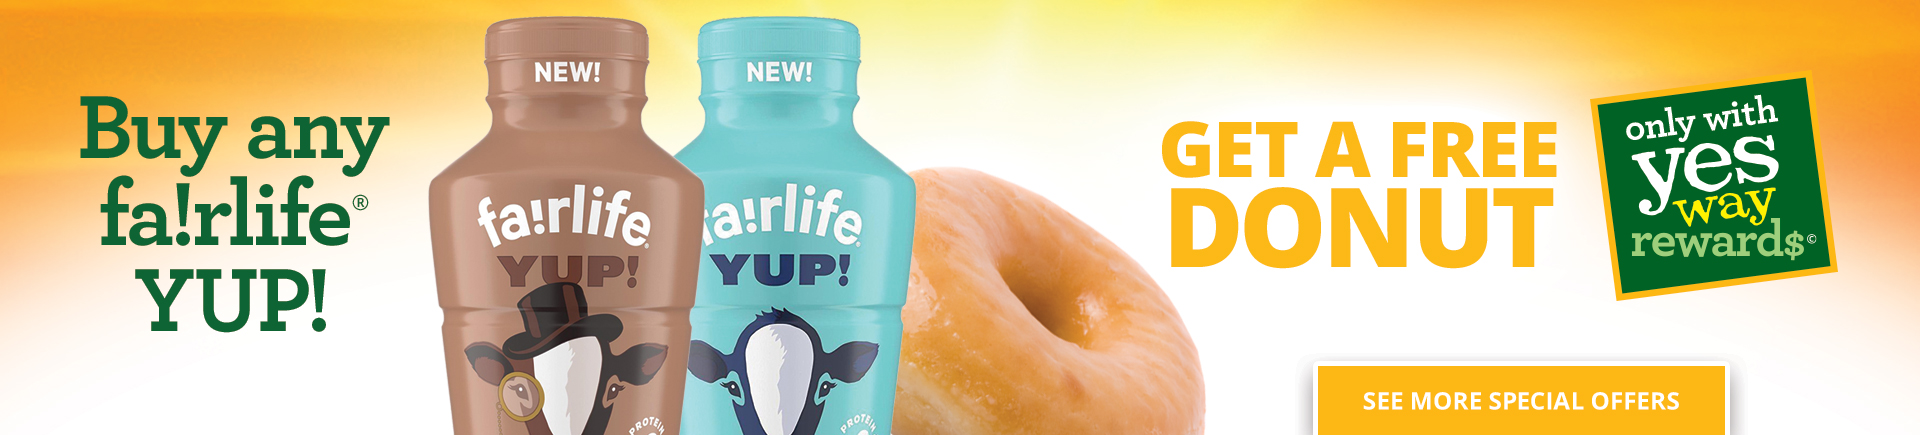 Buy any Fairlife YUP and get a free donut